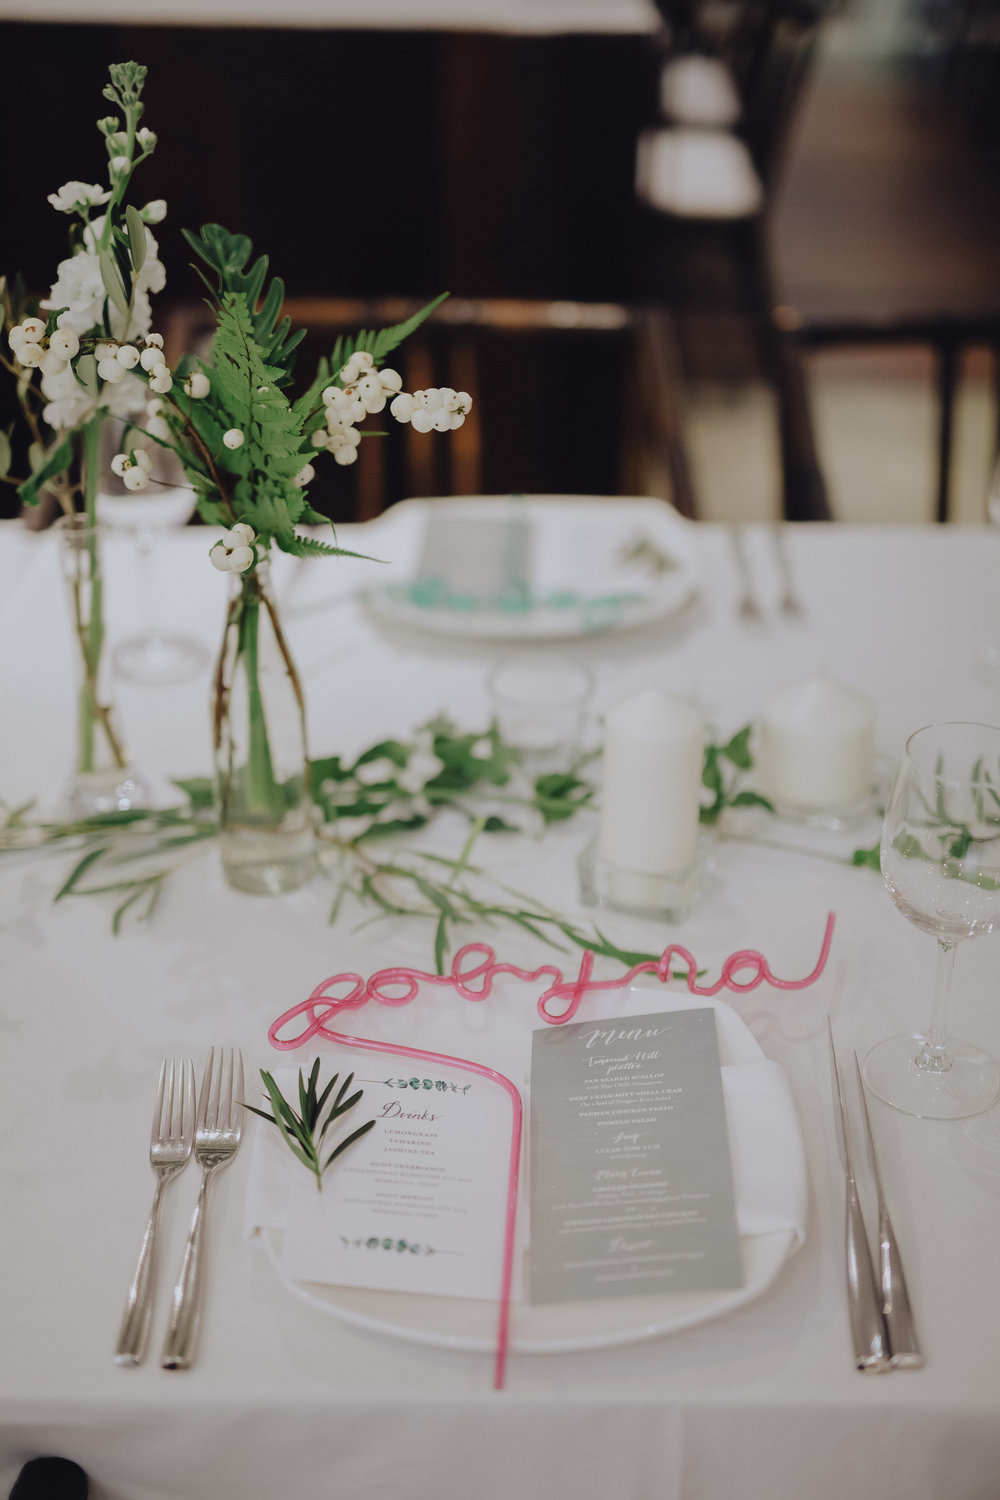 Photo by Tiny Dot Photography featuring food & beverage menu by Wood&Lead